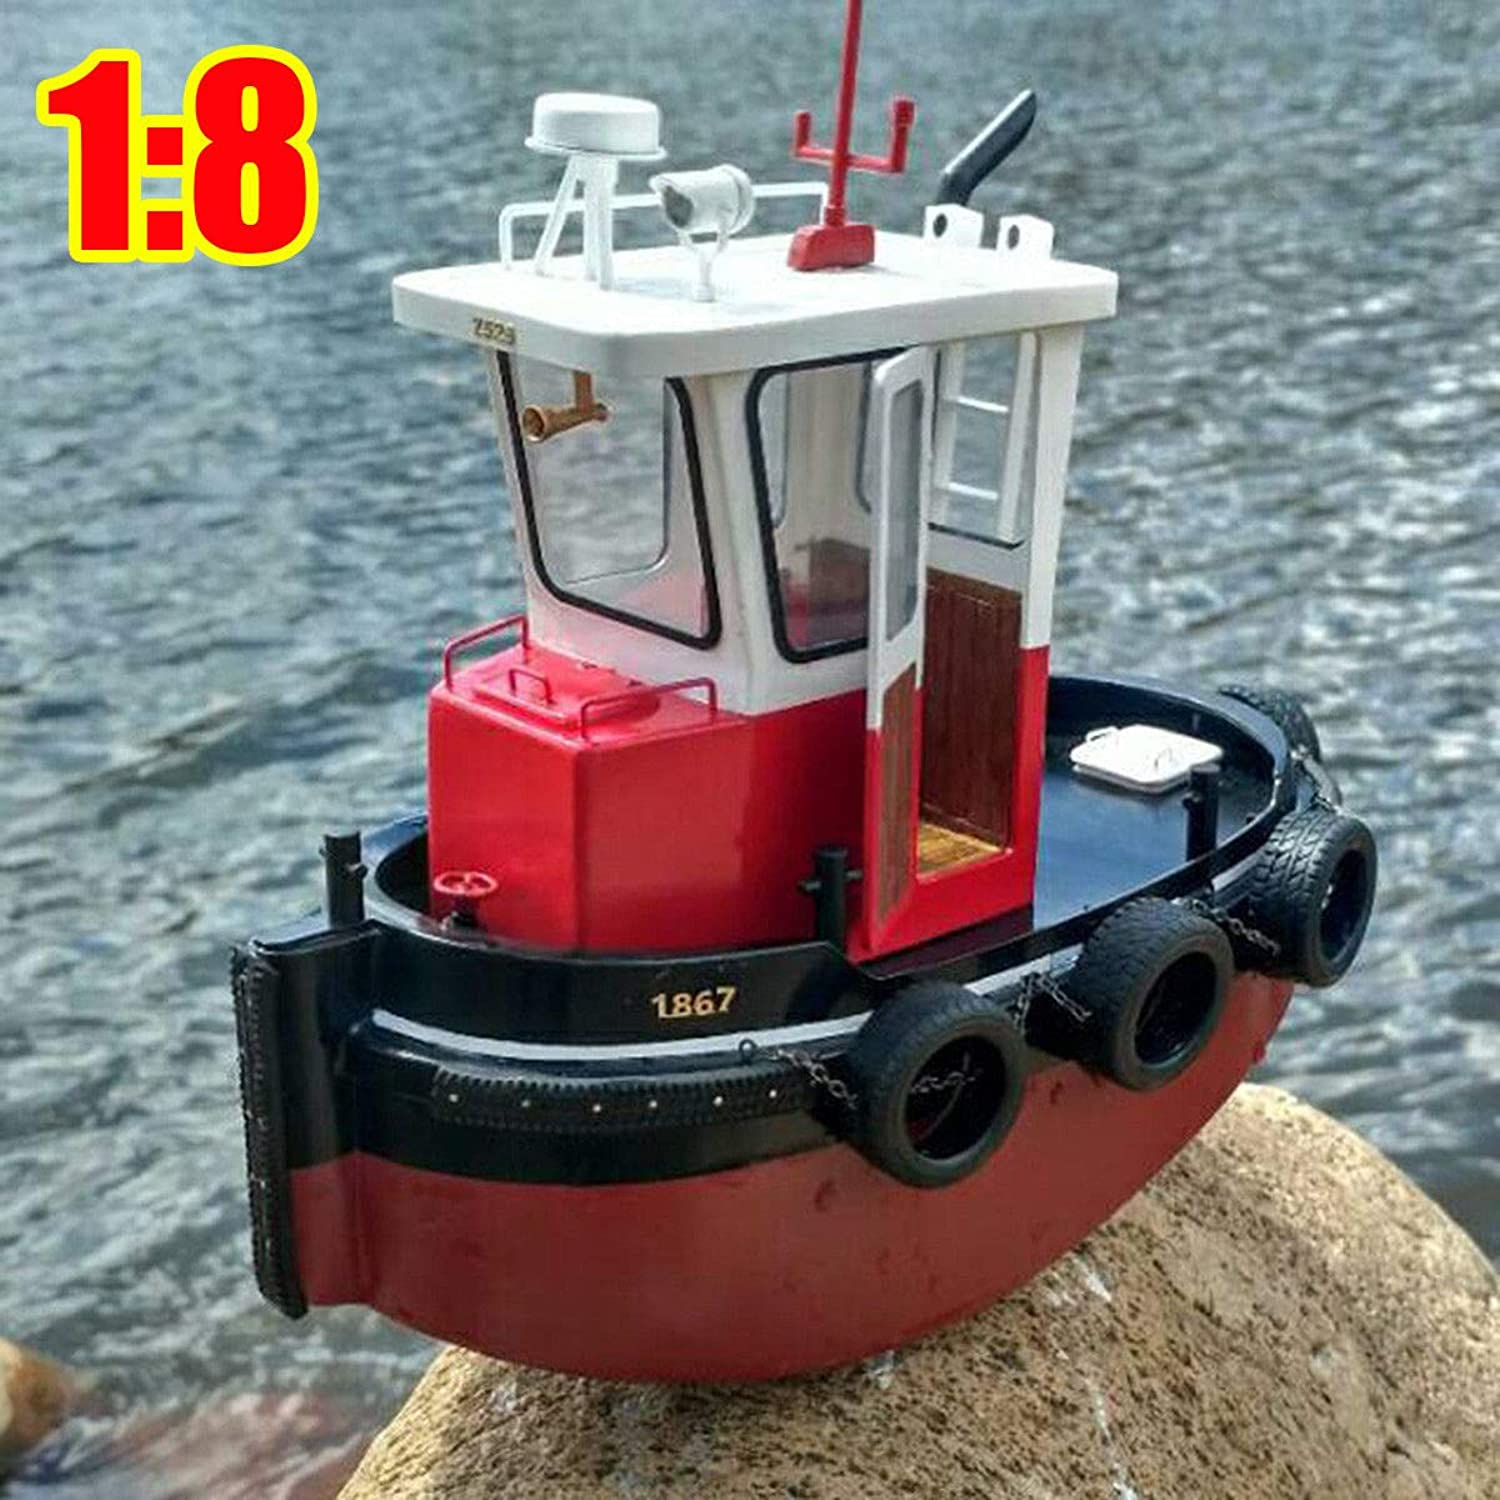 FidgetKute 1 18 RC Tugboat Rescue Simulation Simulation Simulation ABS Wooden Boat Model Ship DIY Kit Kids Gift 2d3a0a